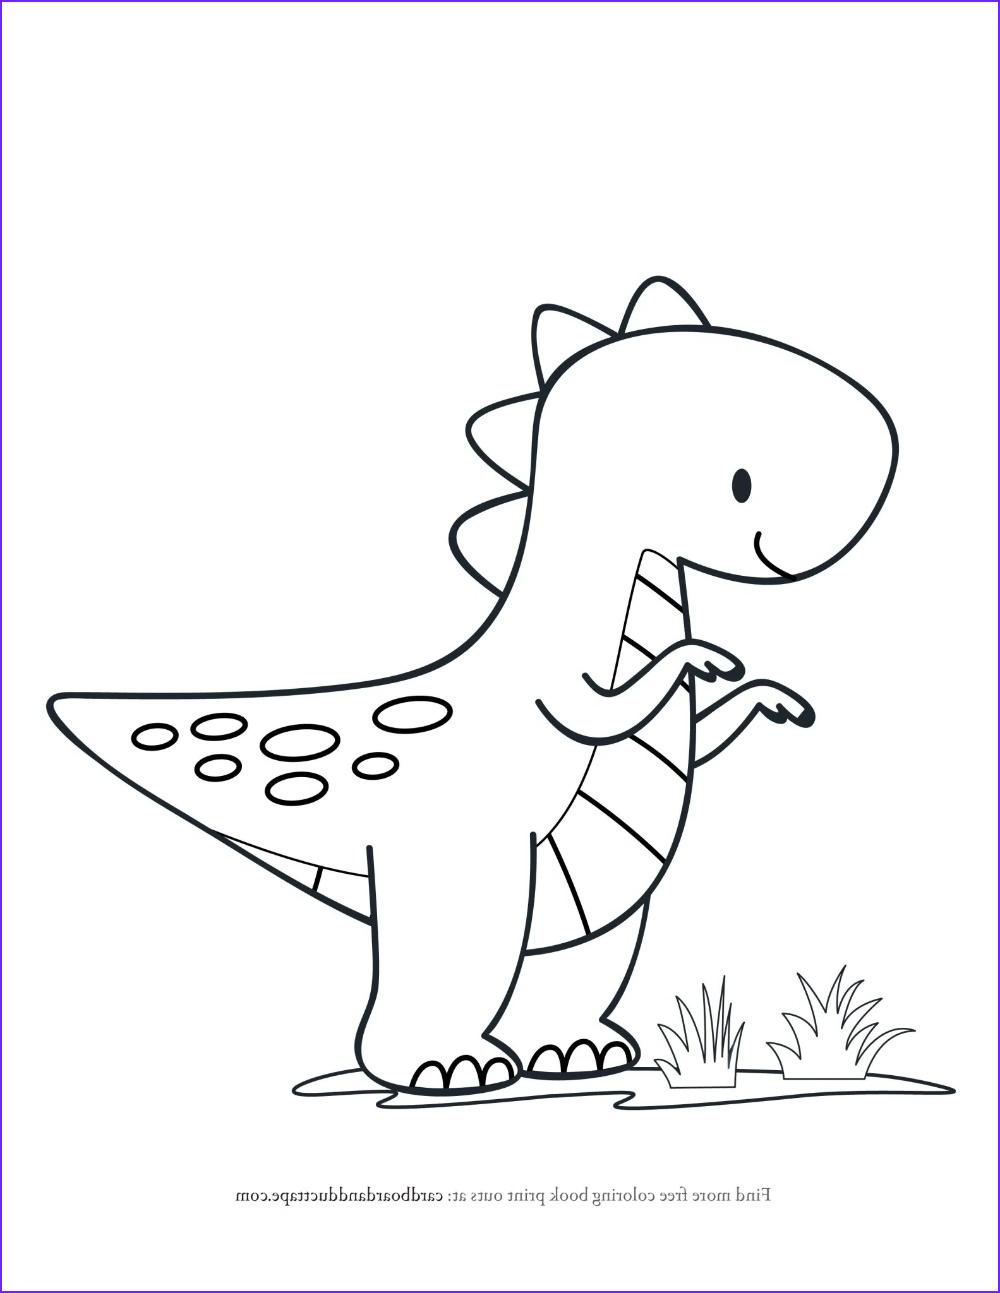 T Rex Coloring Page Elegant Stock T Rex Coloring Page — Cardboard And Duct Tape